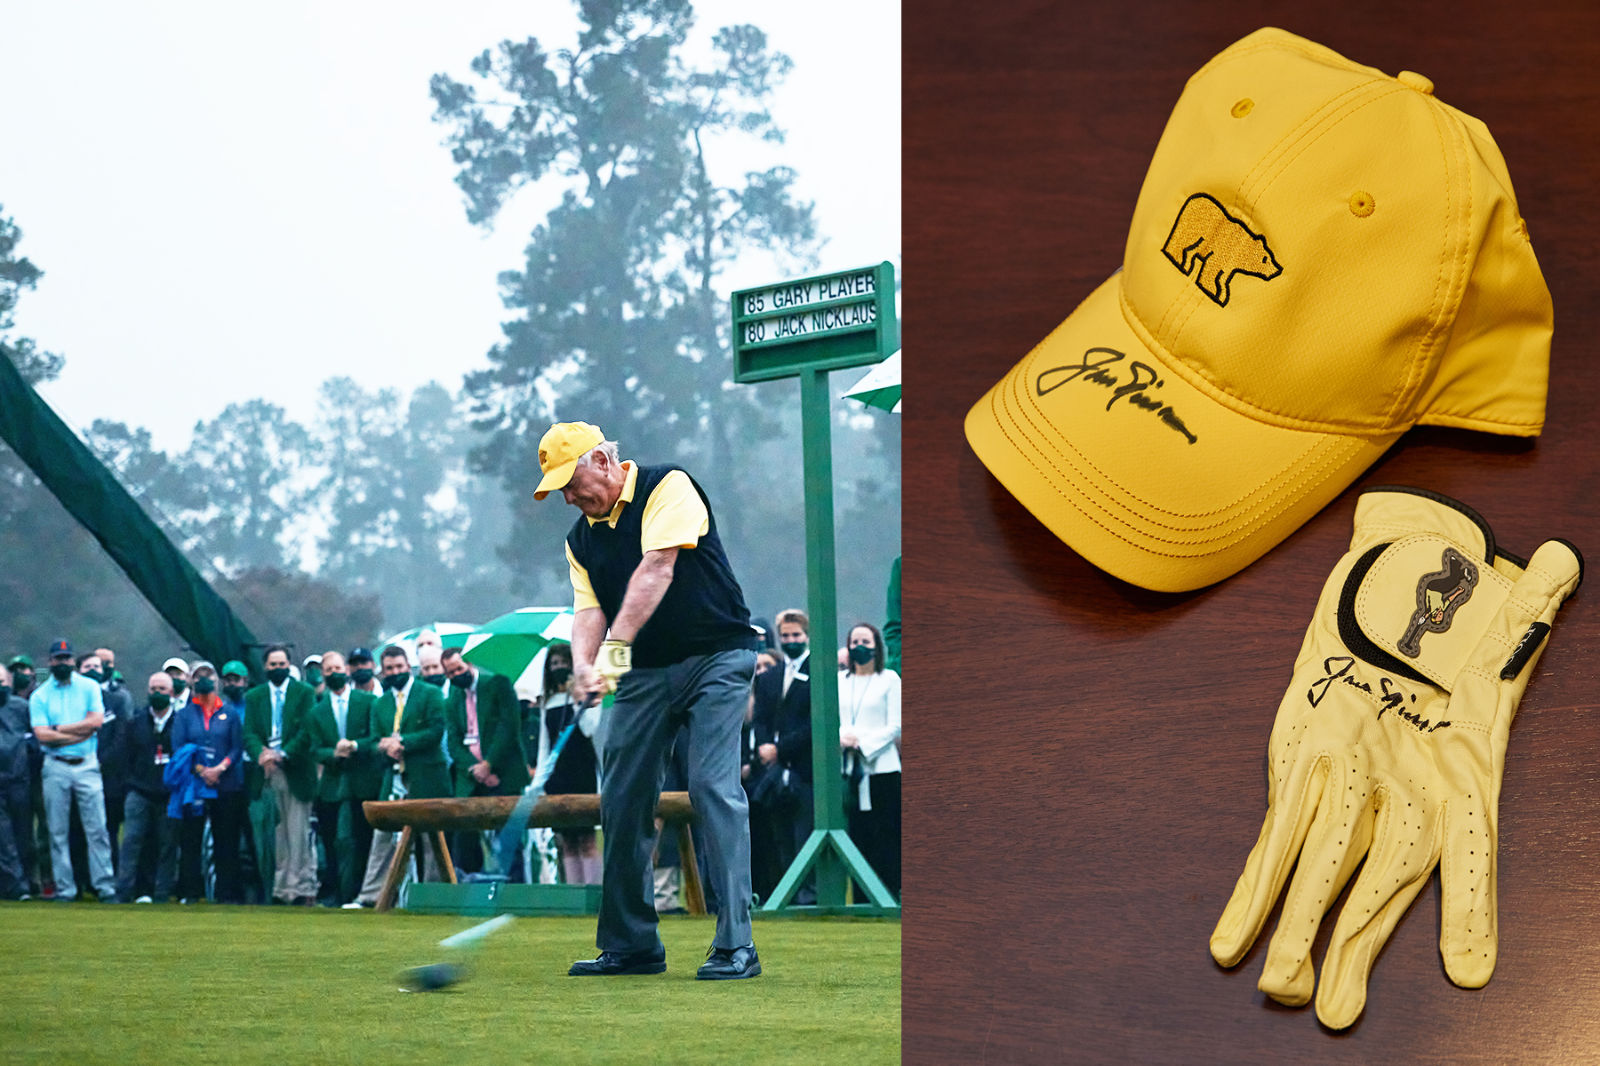 Jack at the Masters play yellow